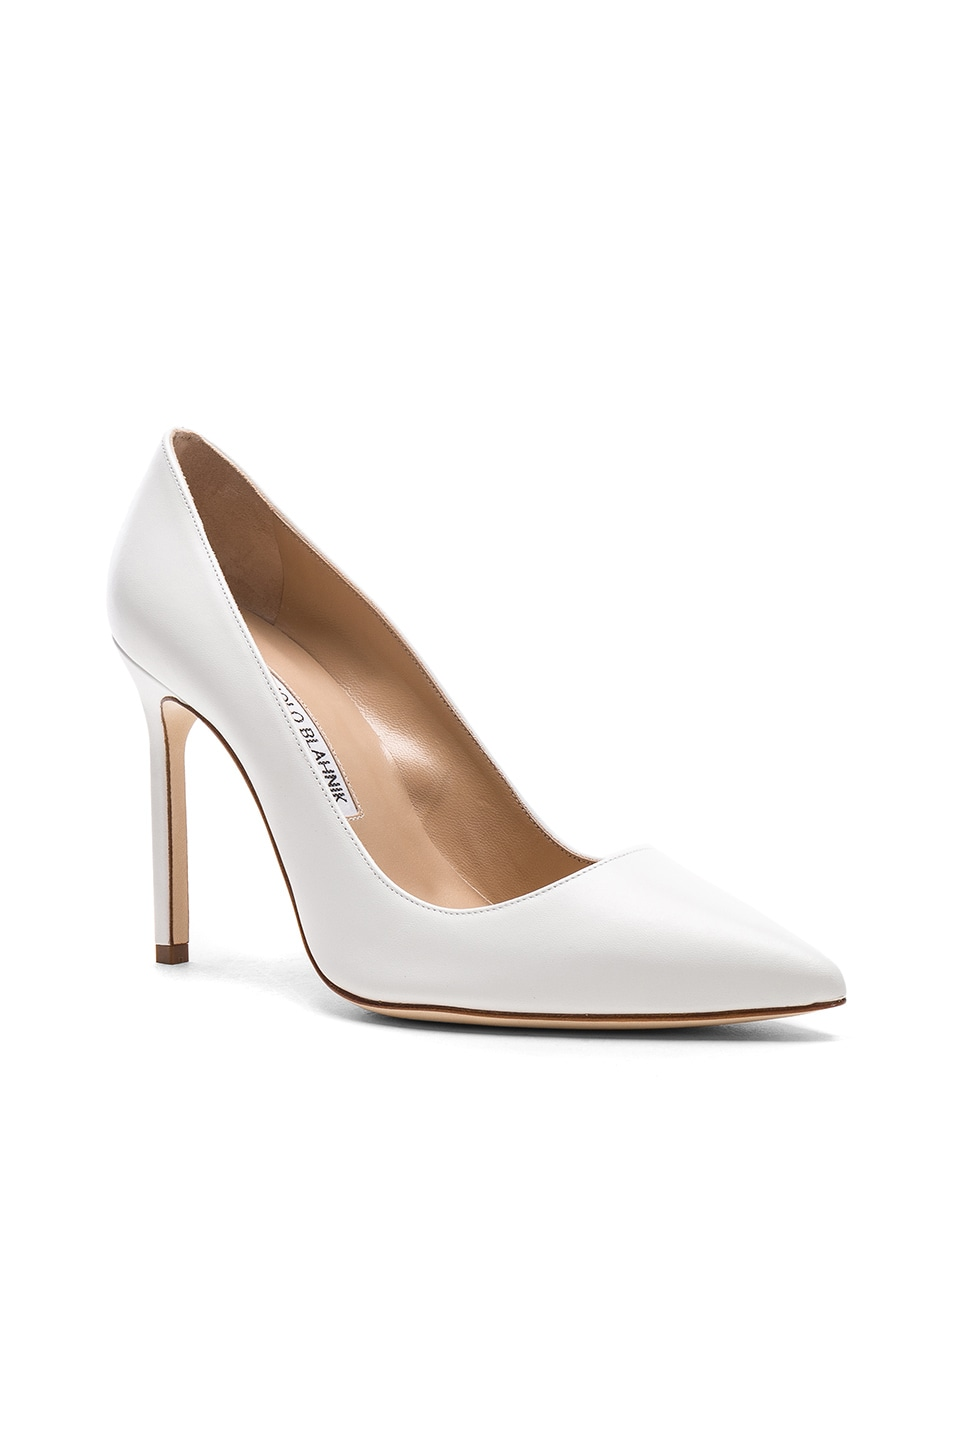 Image 2 of Manolo Blahnik Leather BB 105 Heels in White Leather